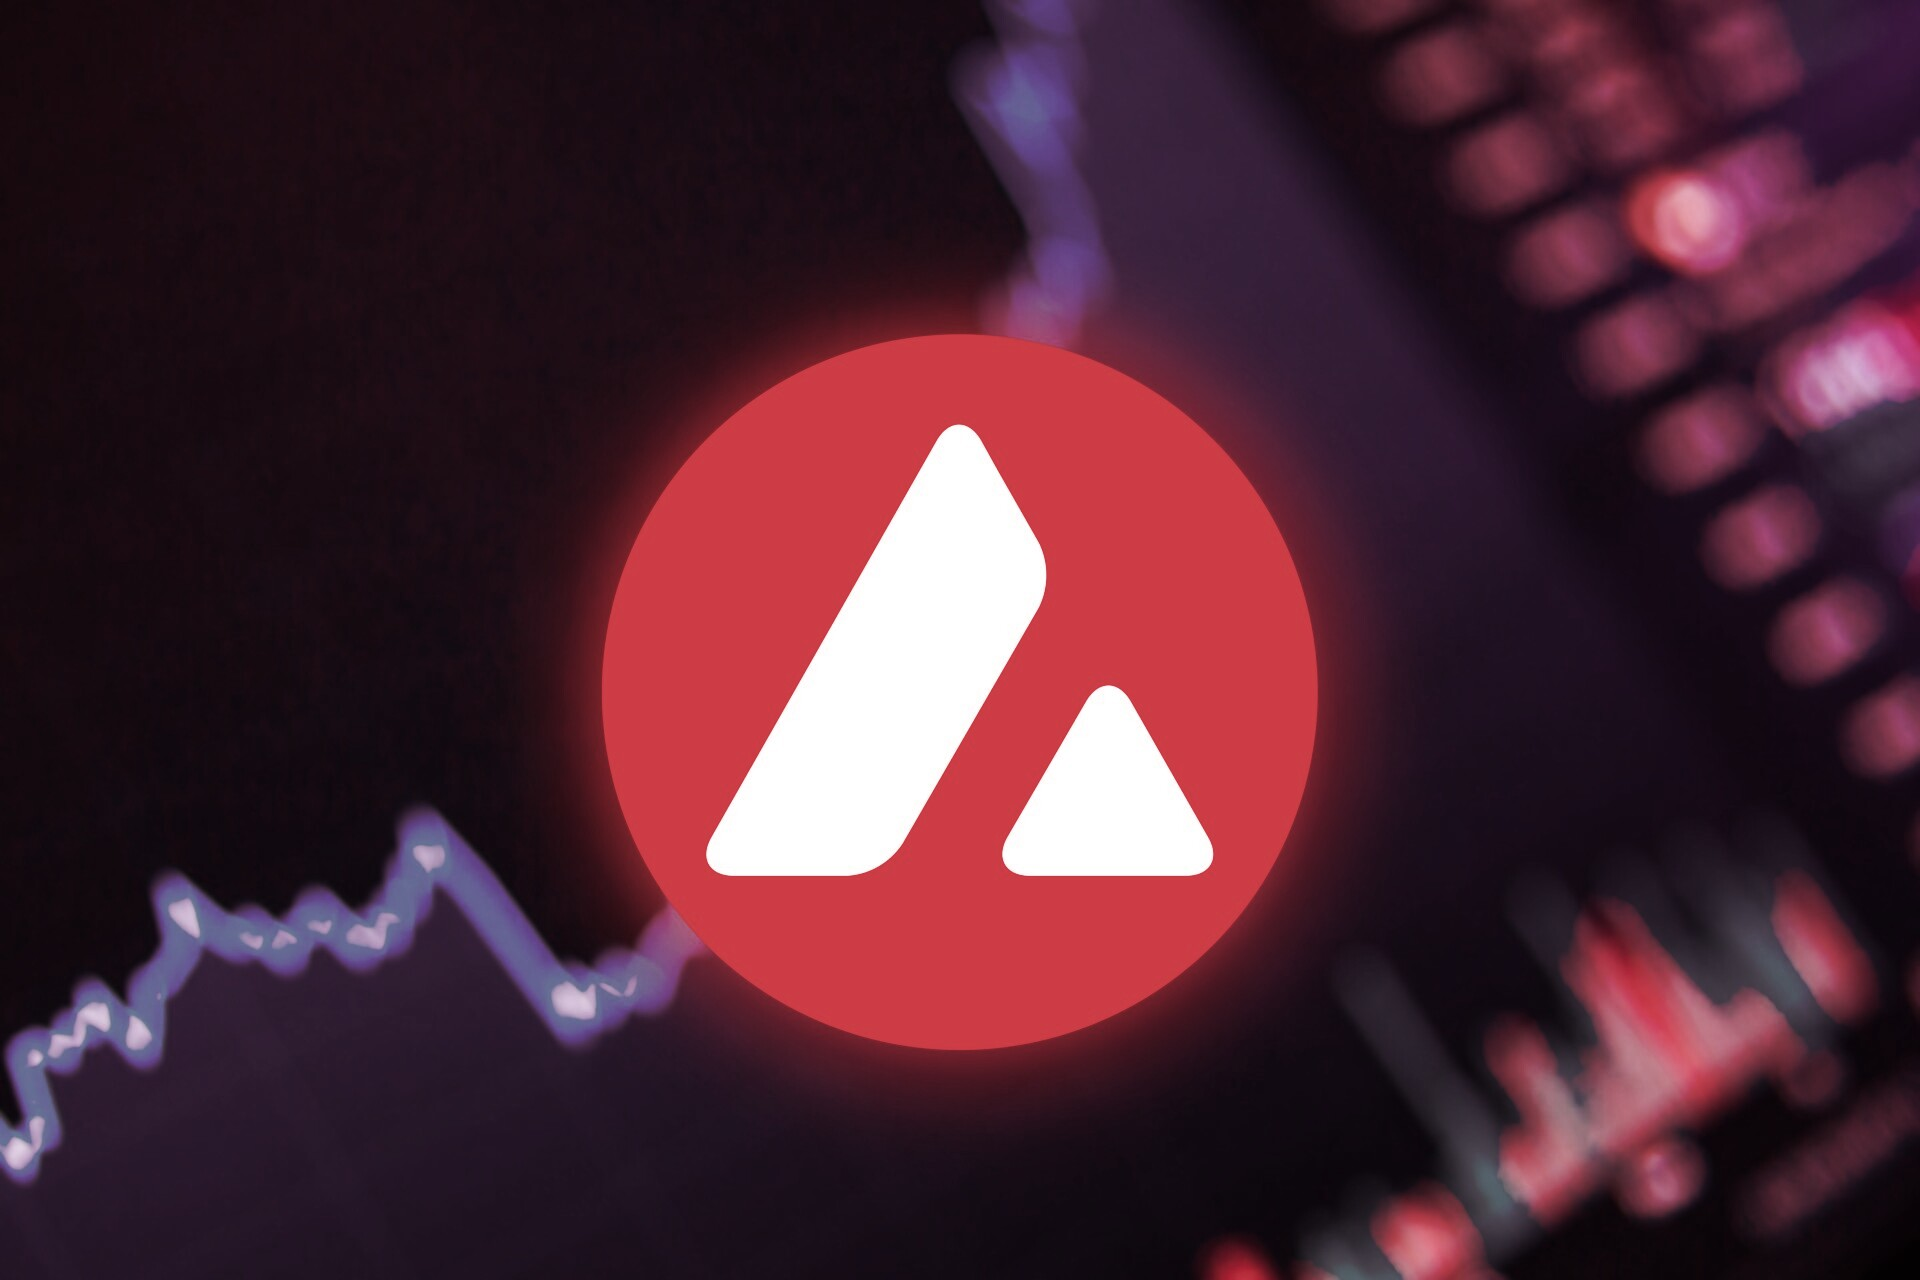 Avalanche Hits Three-Month High With Aave, Curve's $180M Launch on Platform